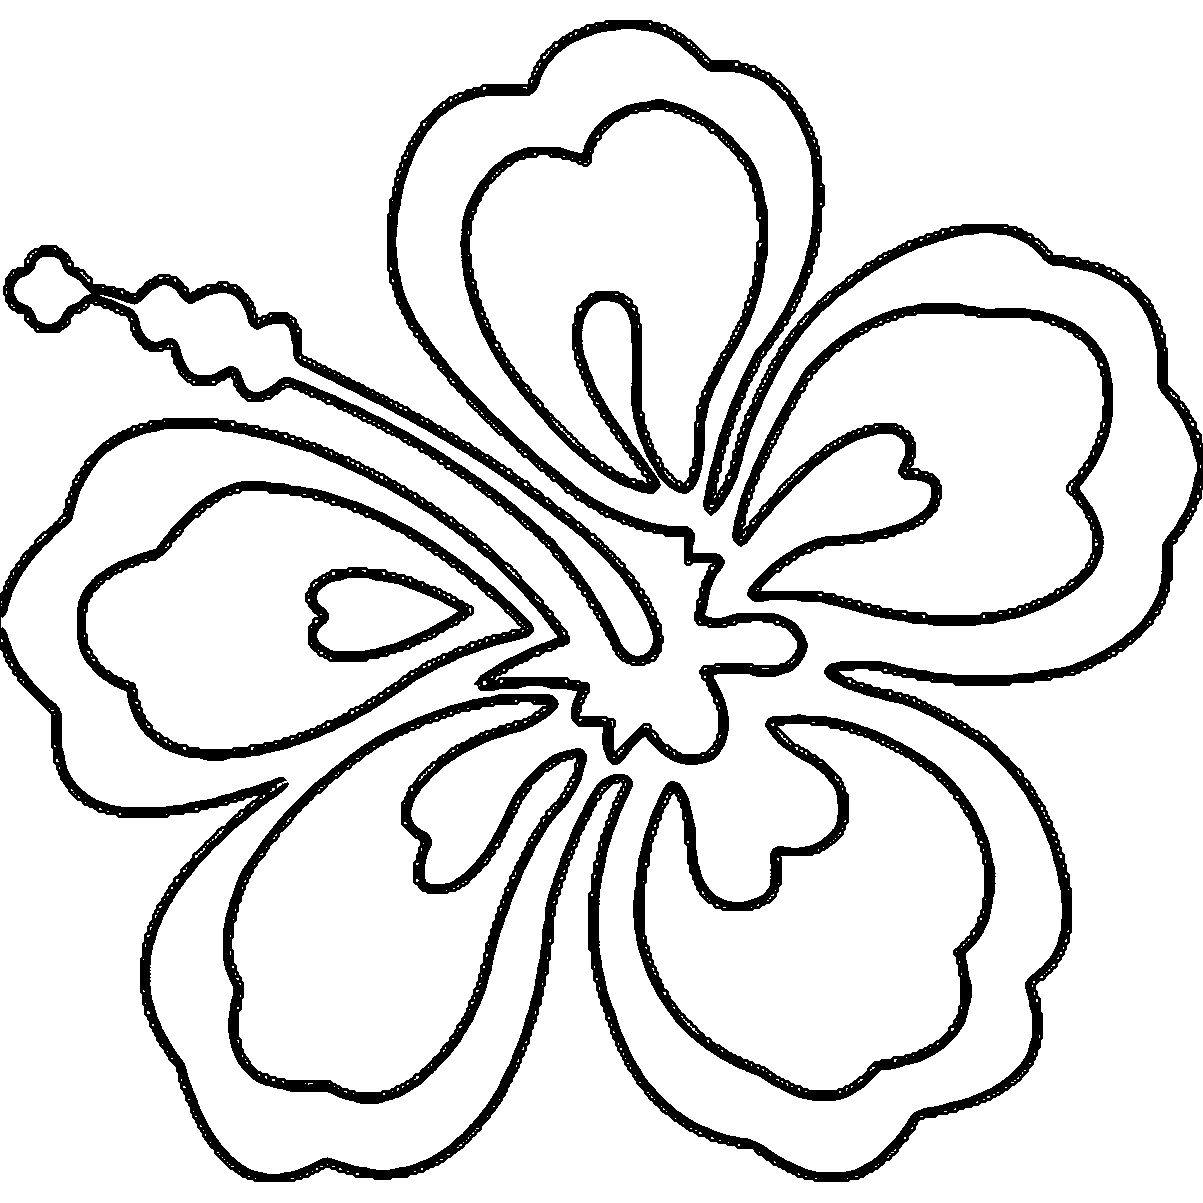 Hawaiian Flower Coloring Page - Hawaii Flower Coloring Page Coloring Home